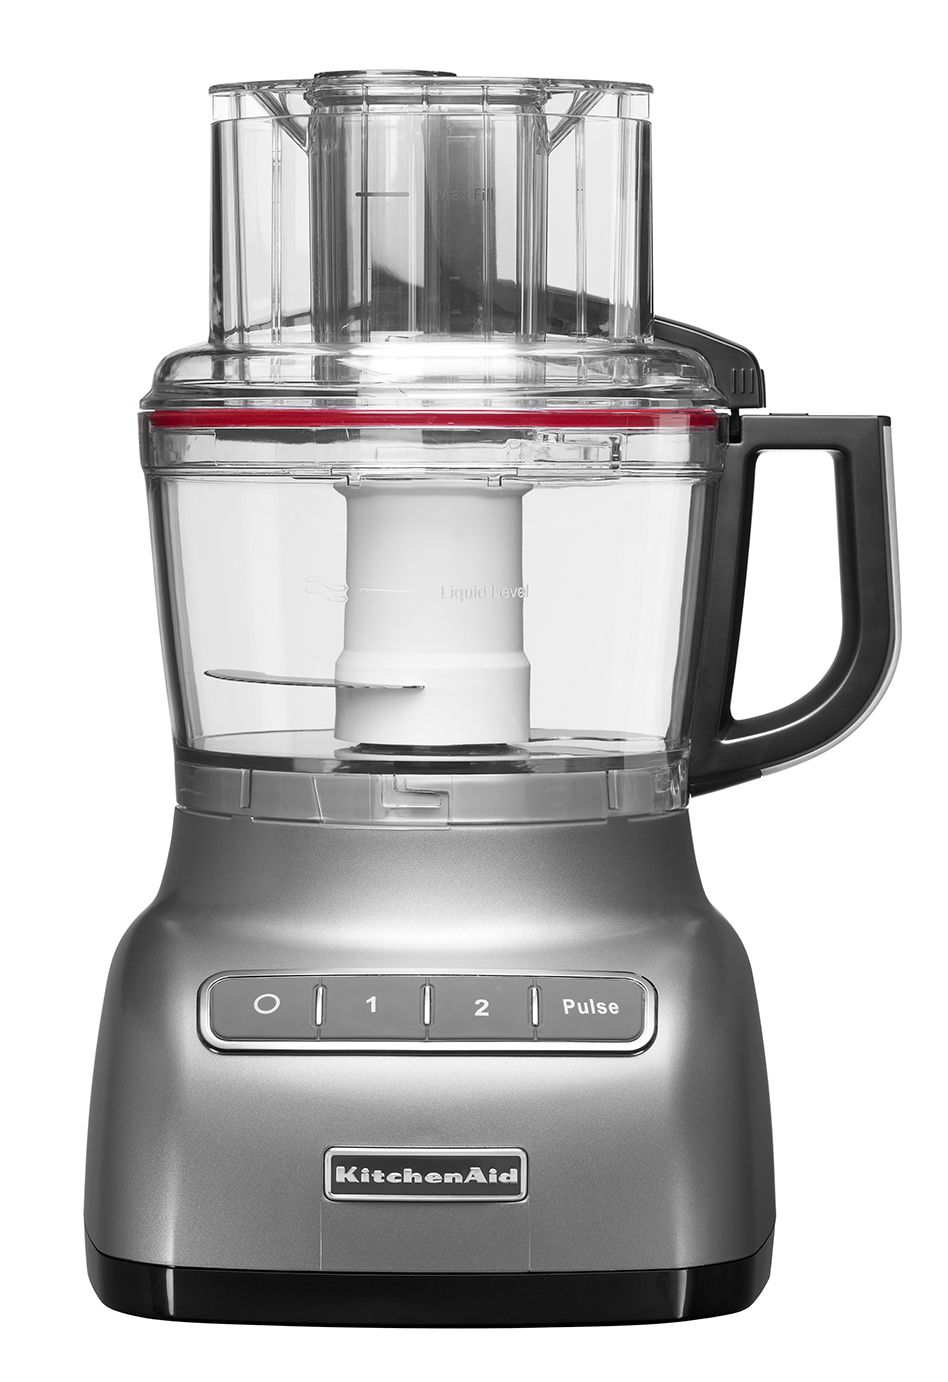 2.1L Kitchenaid Contour silver food processor